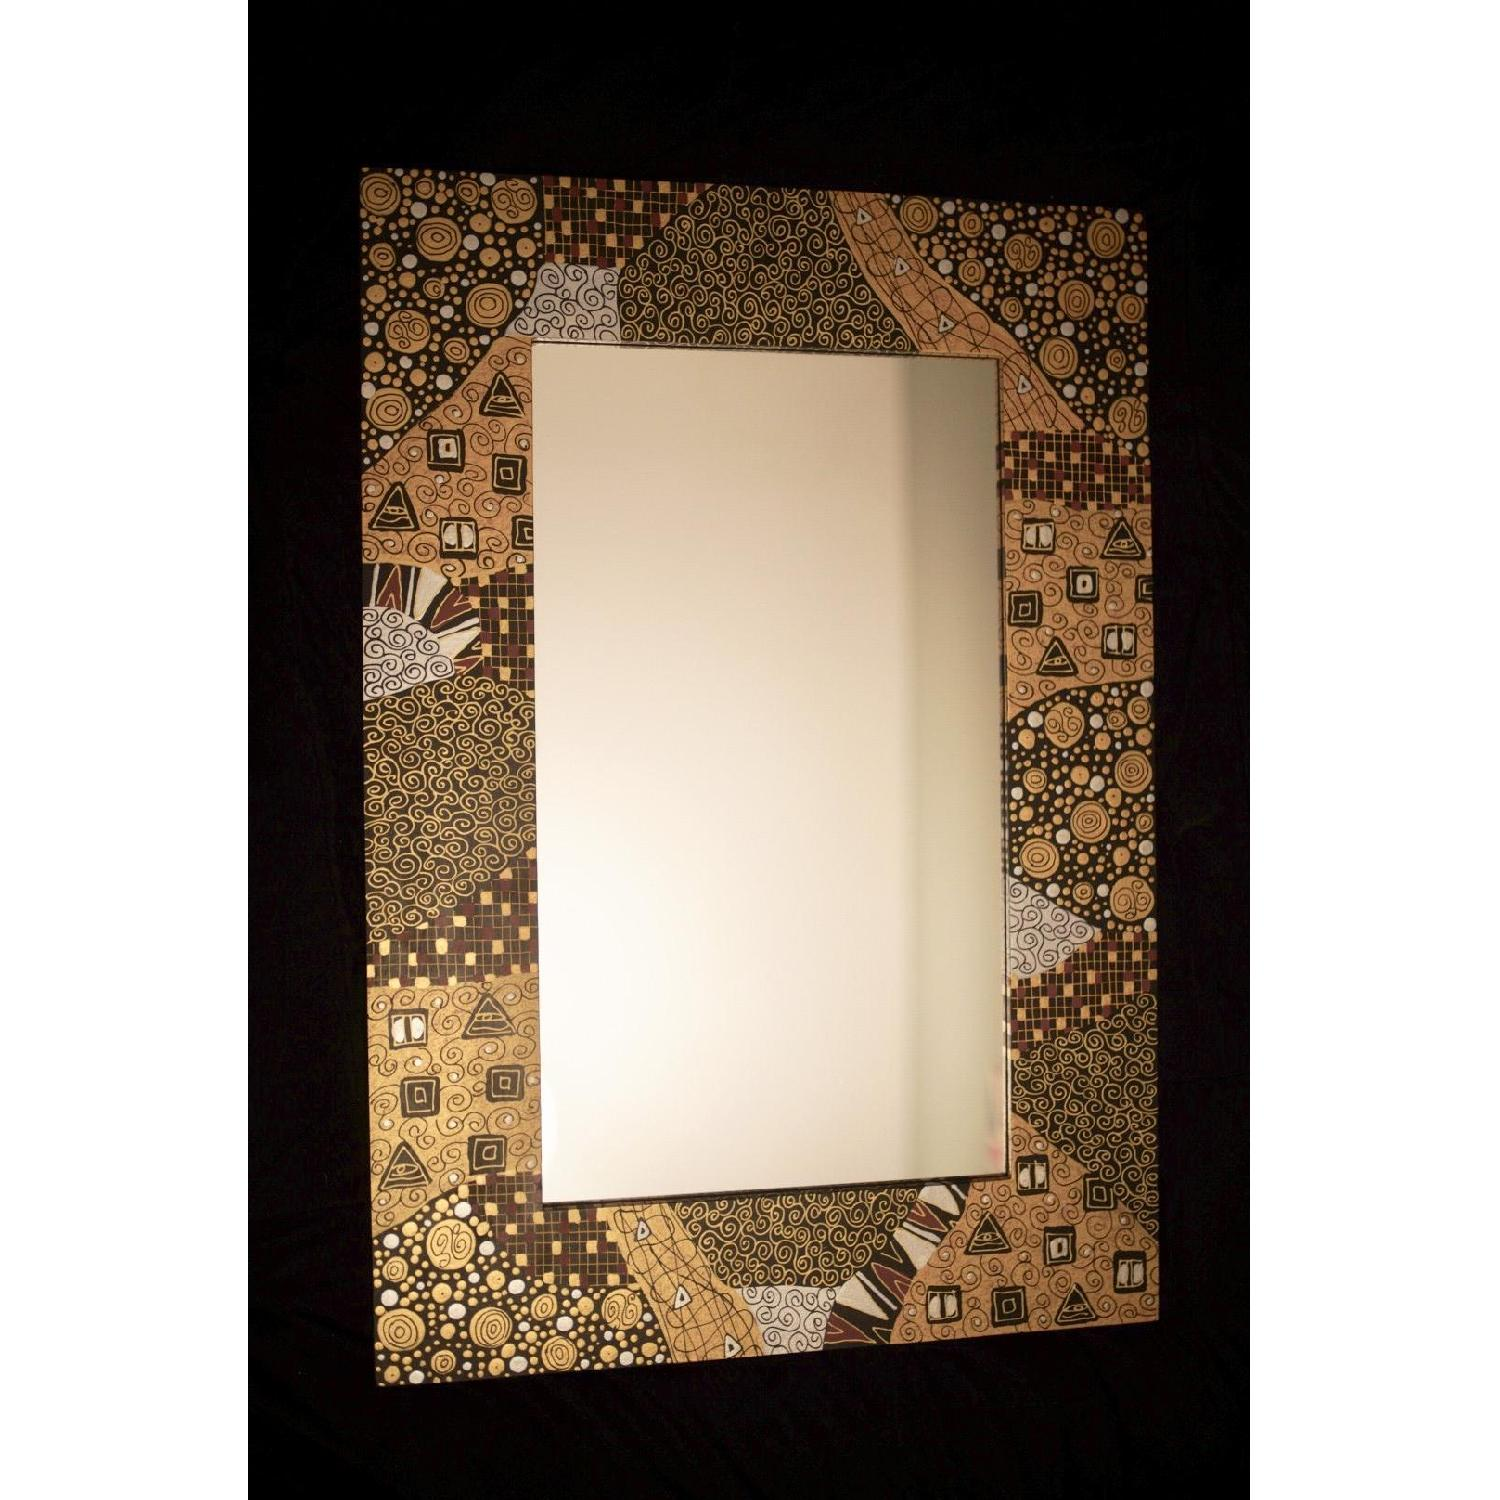 Ten Thousand Villages Gold Patterned Mirror-0